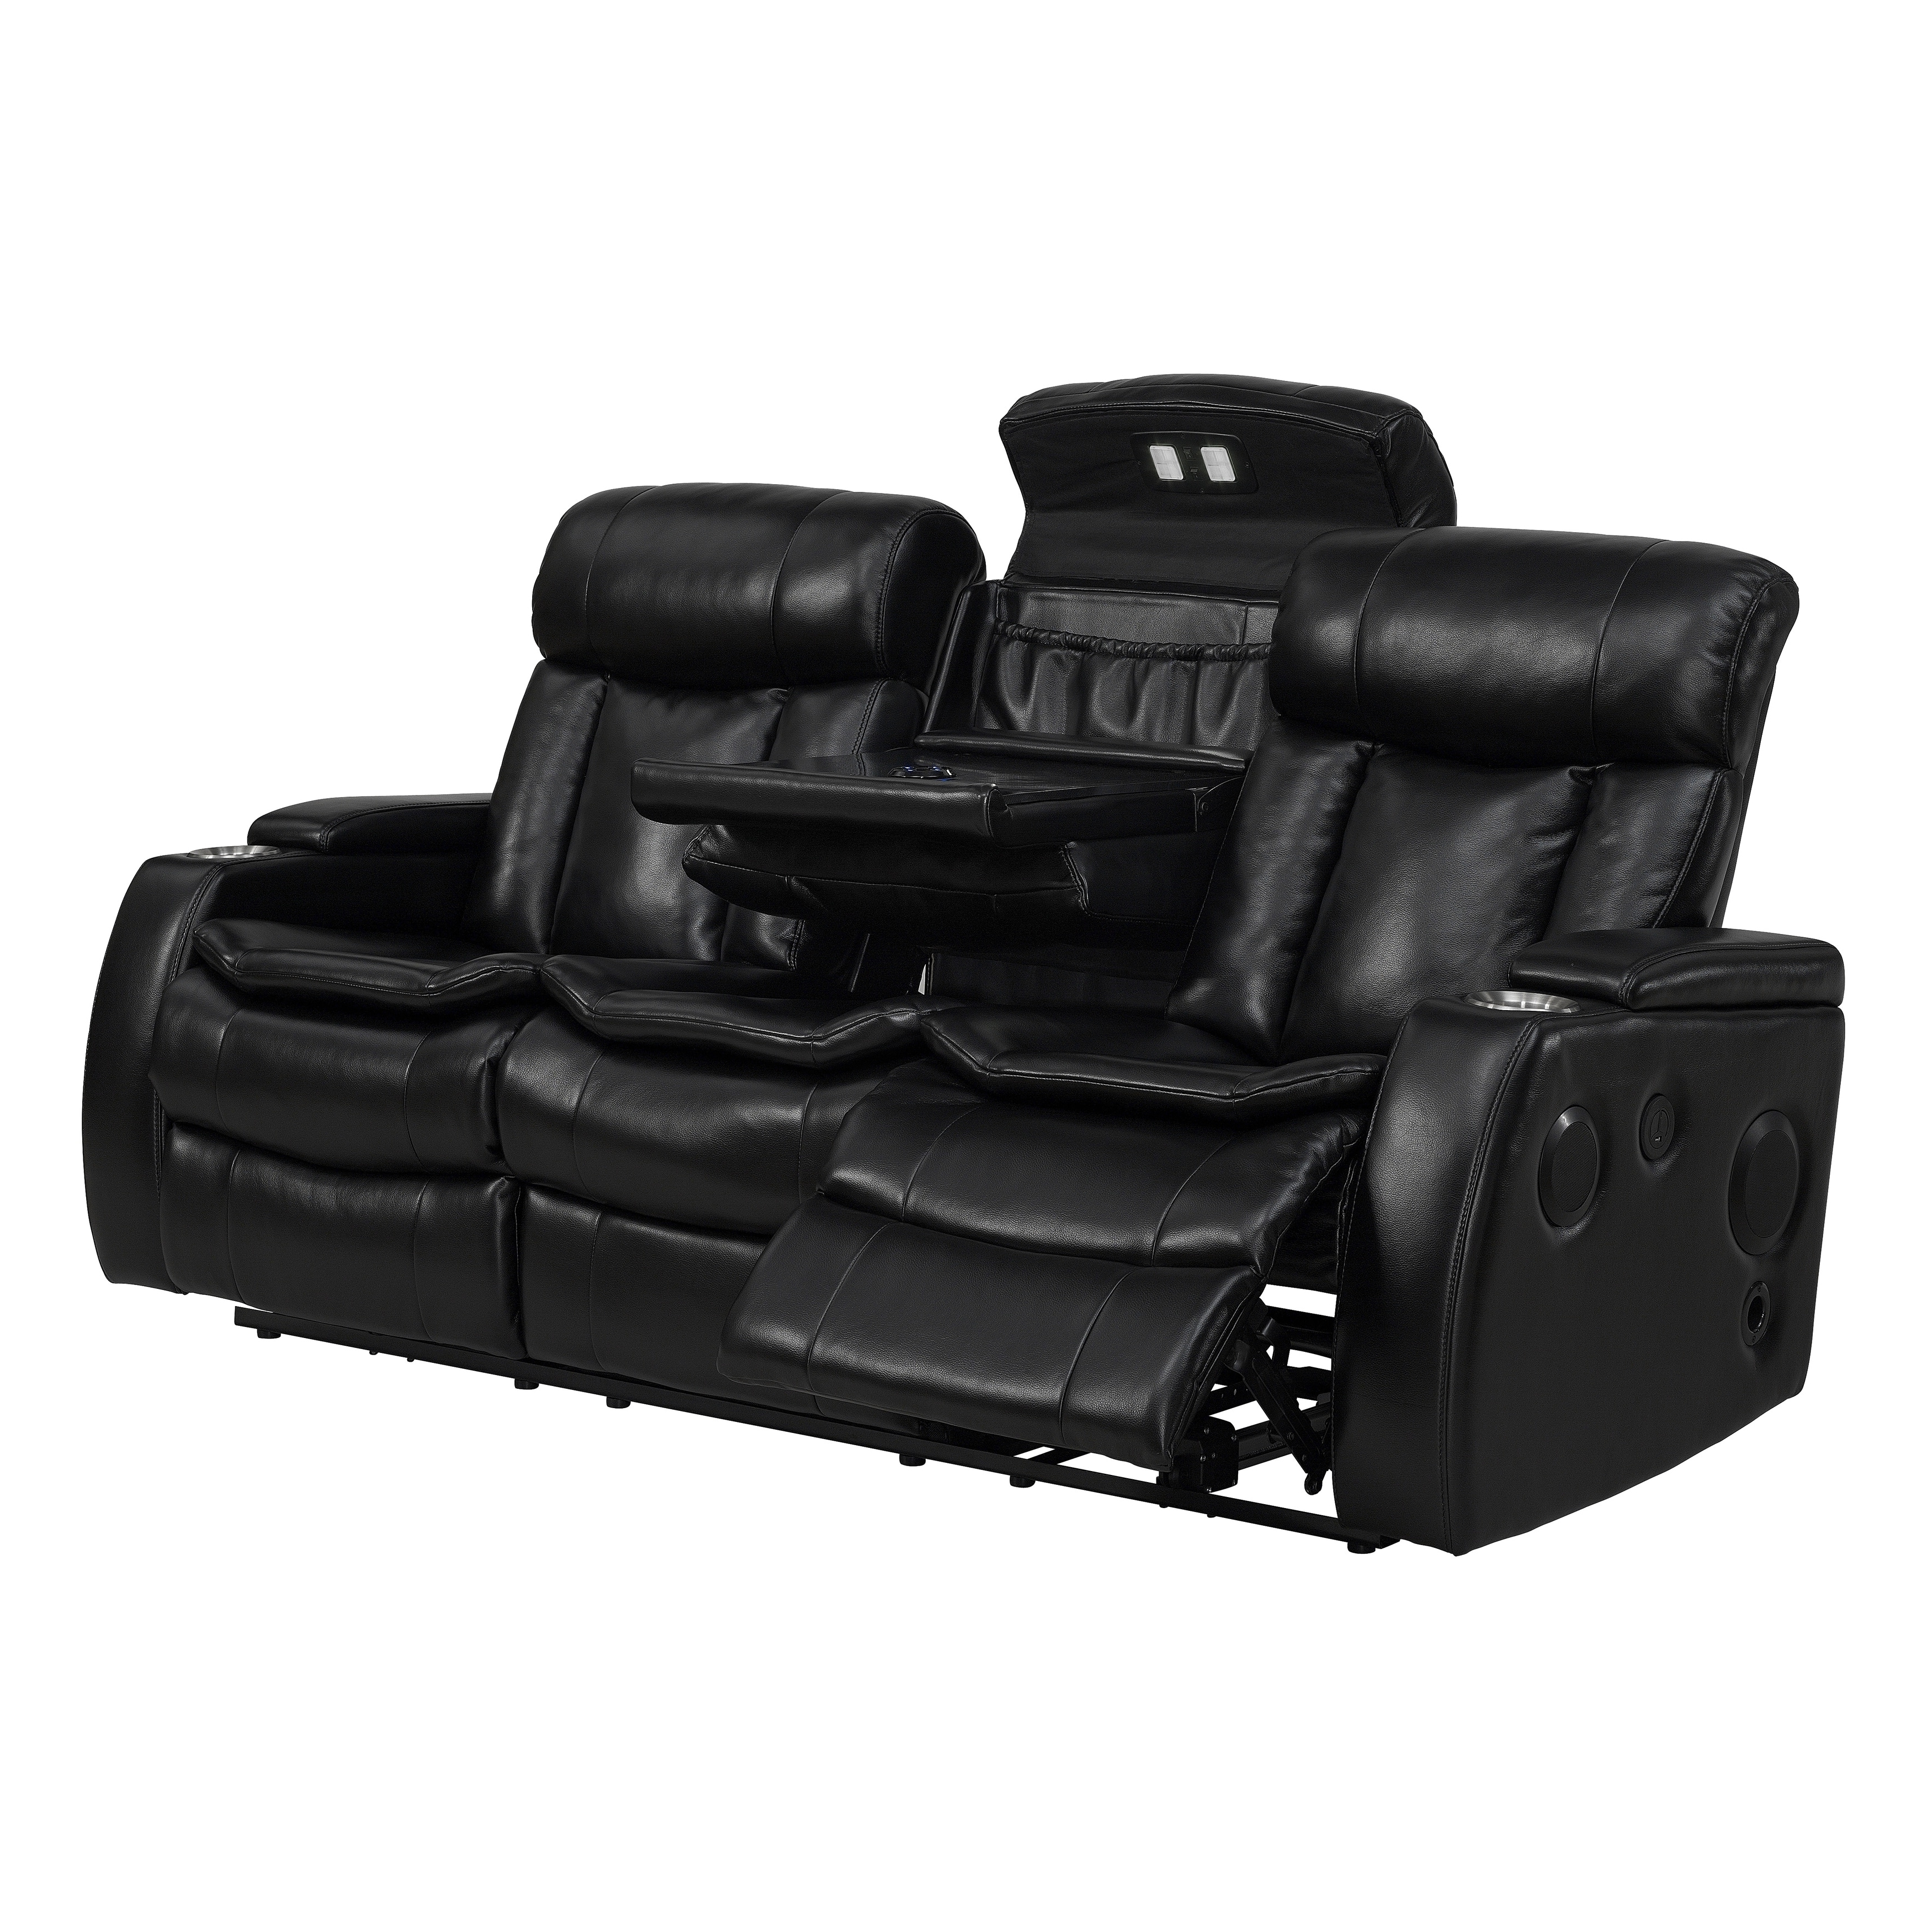 Preferred Recliner Sofas With Bluetooth Black Power Recliner Sofa With Usb – Free Shipping Today (View 13 of 15)